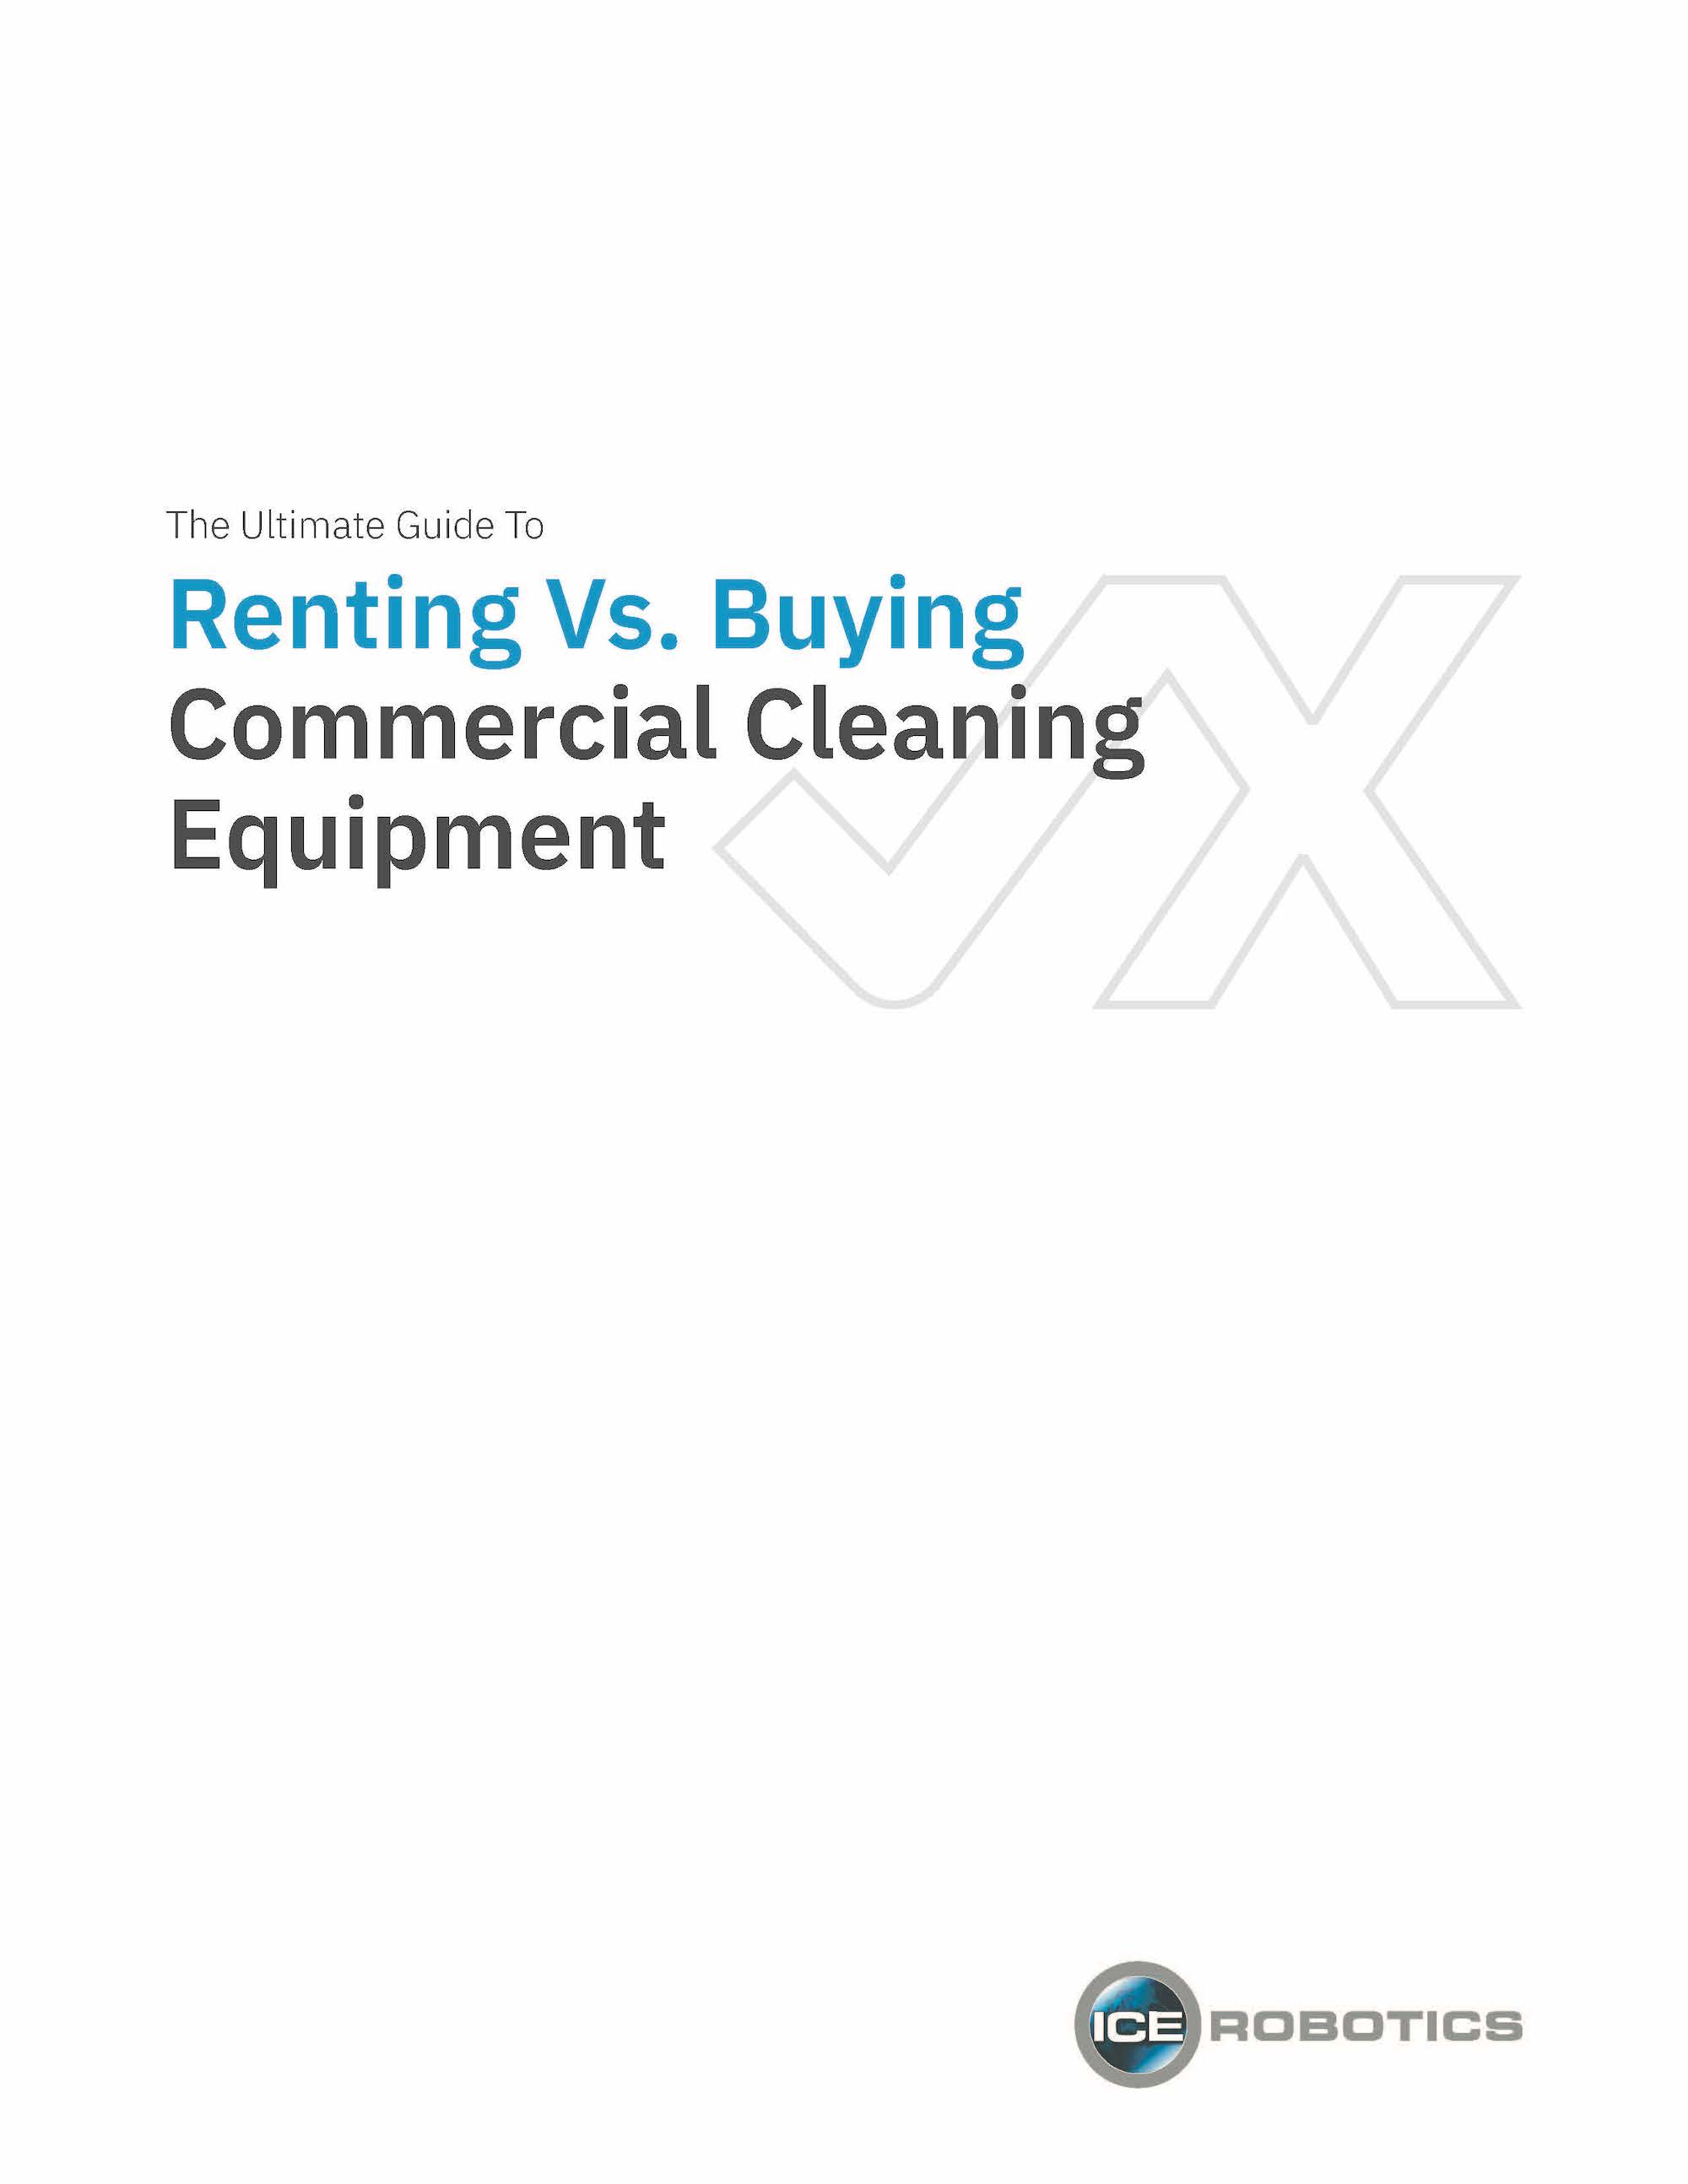 The Ultimate Guide to Renting vs. Buying Commercial Cleaning Equipment